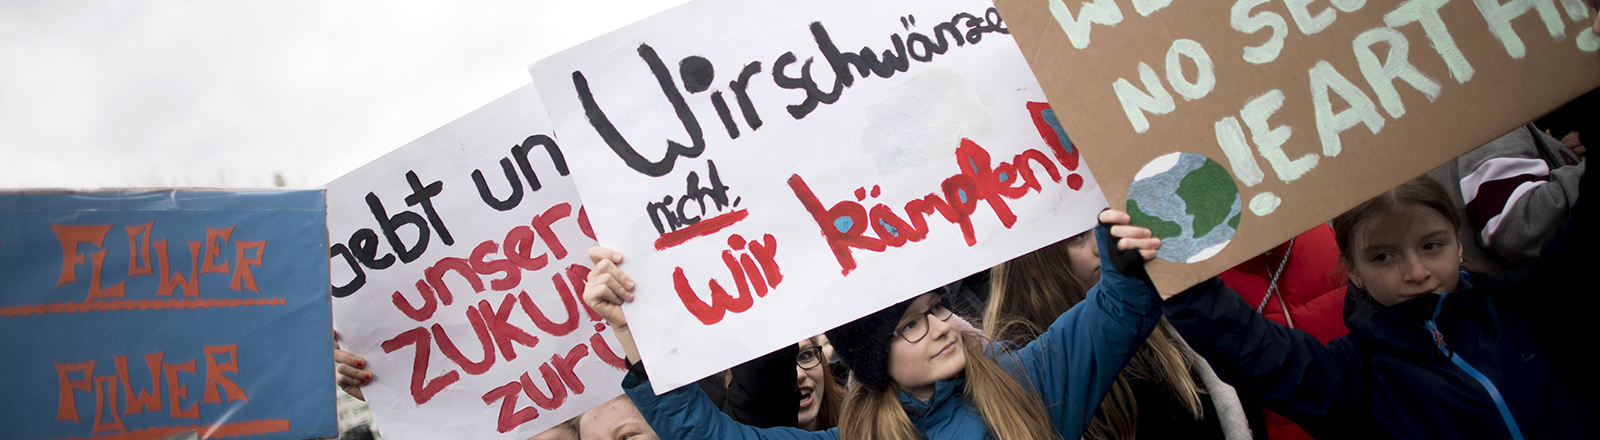 Fridays for Future Schülerstreik in Berlin 15.03.2019